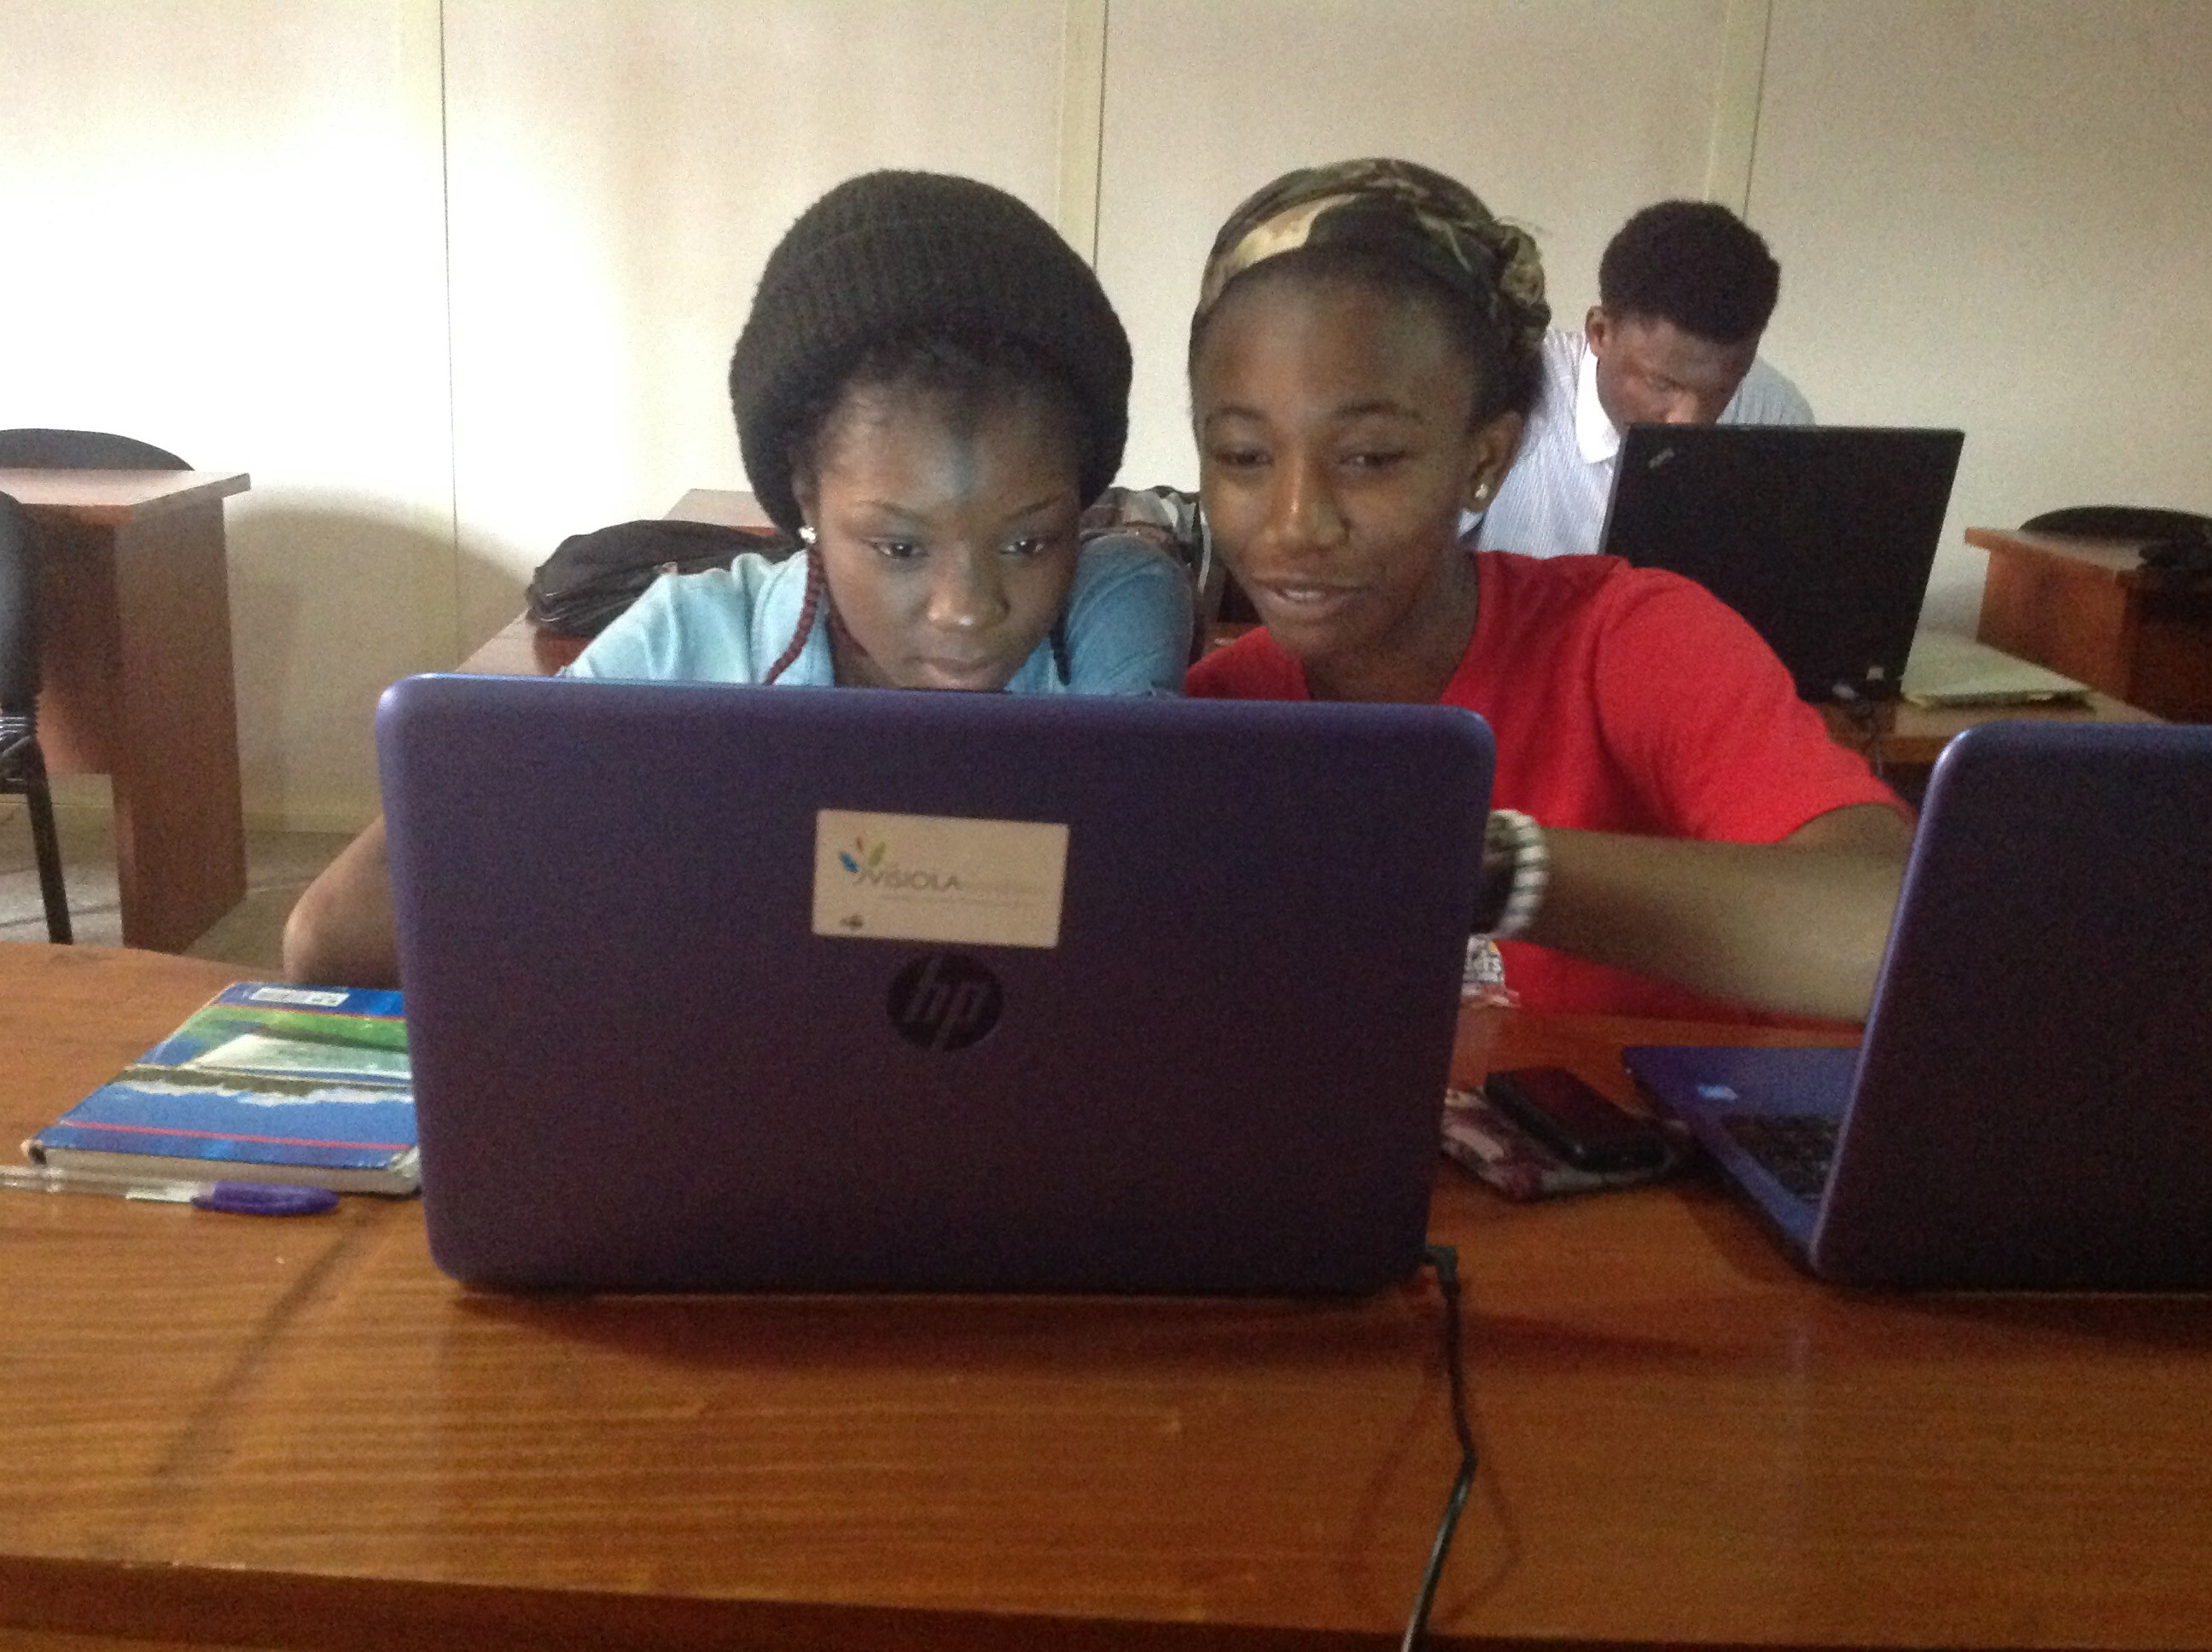 Mavis and Ukamaka at Quanteq